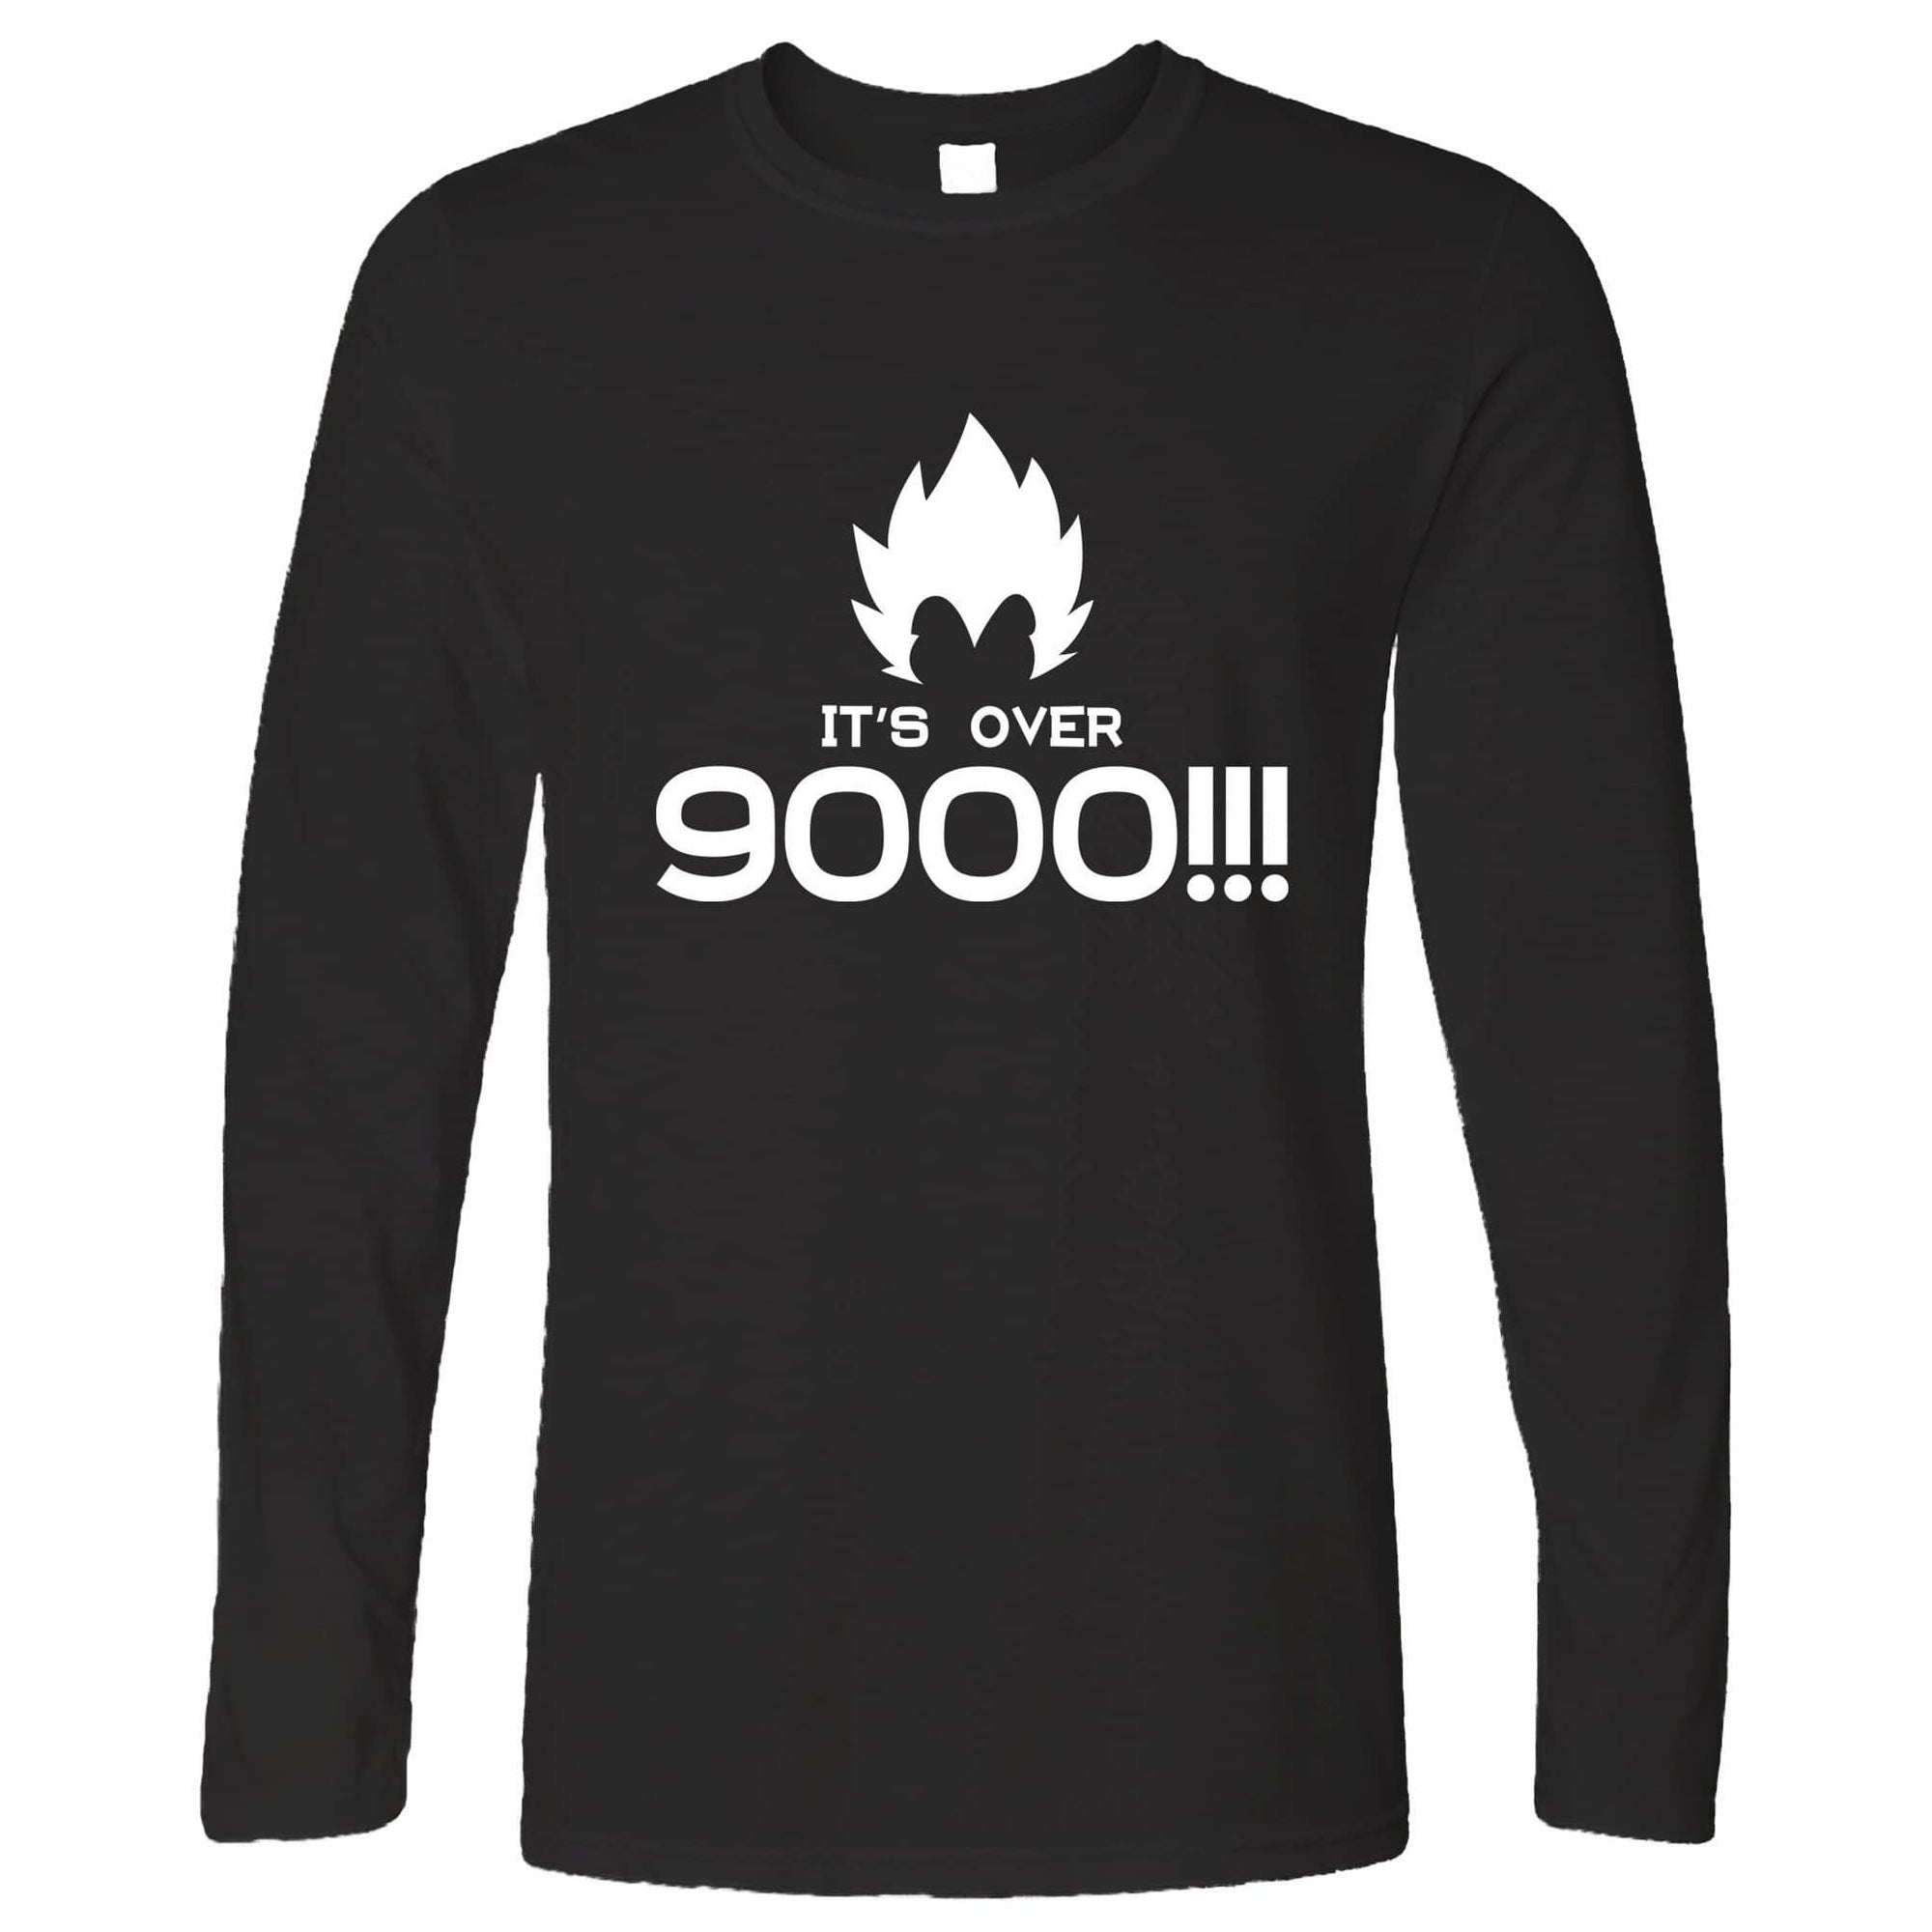 Funny Anime Parody Long Sleeve It's Over 9000!! Slogan